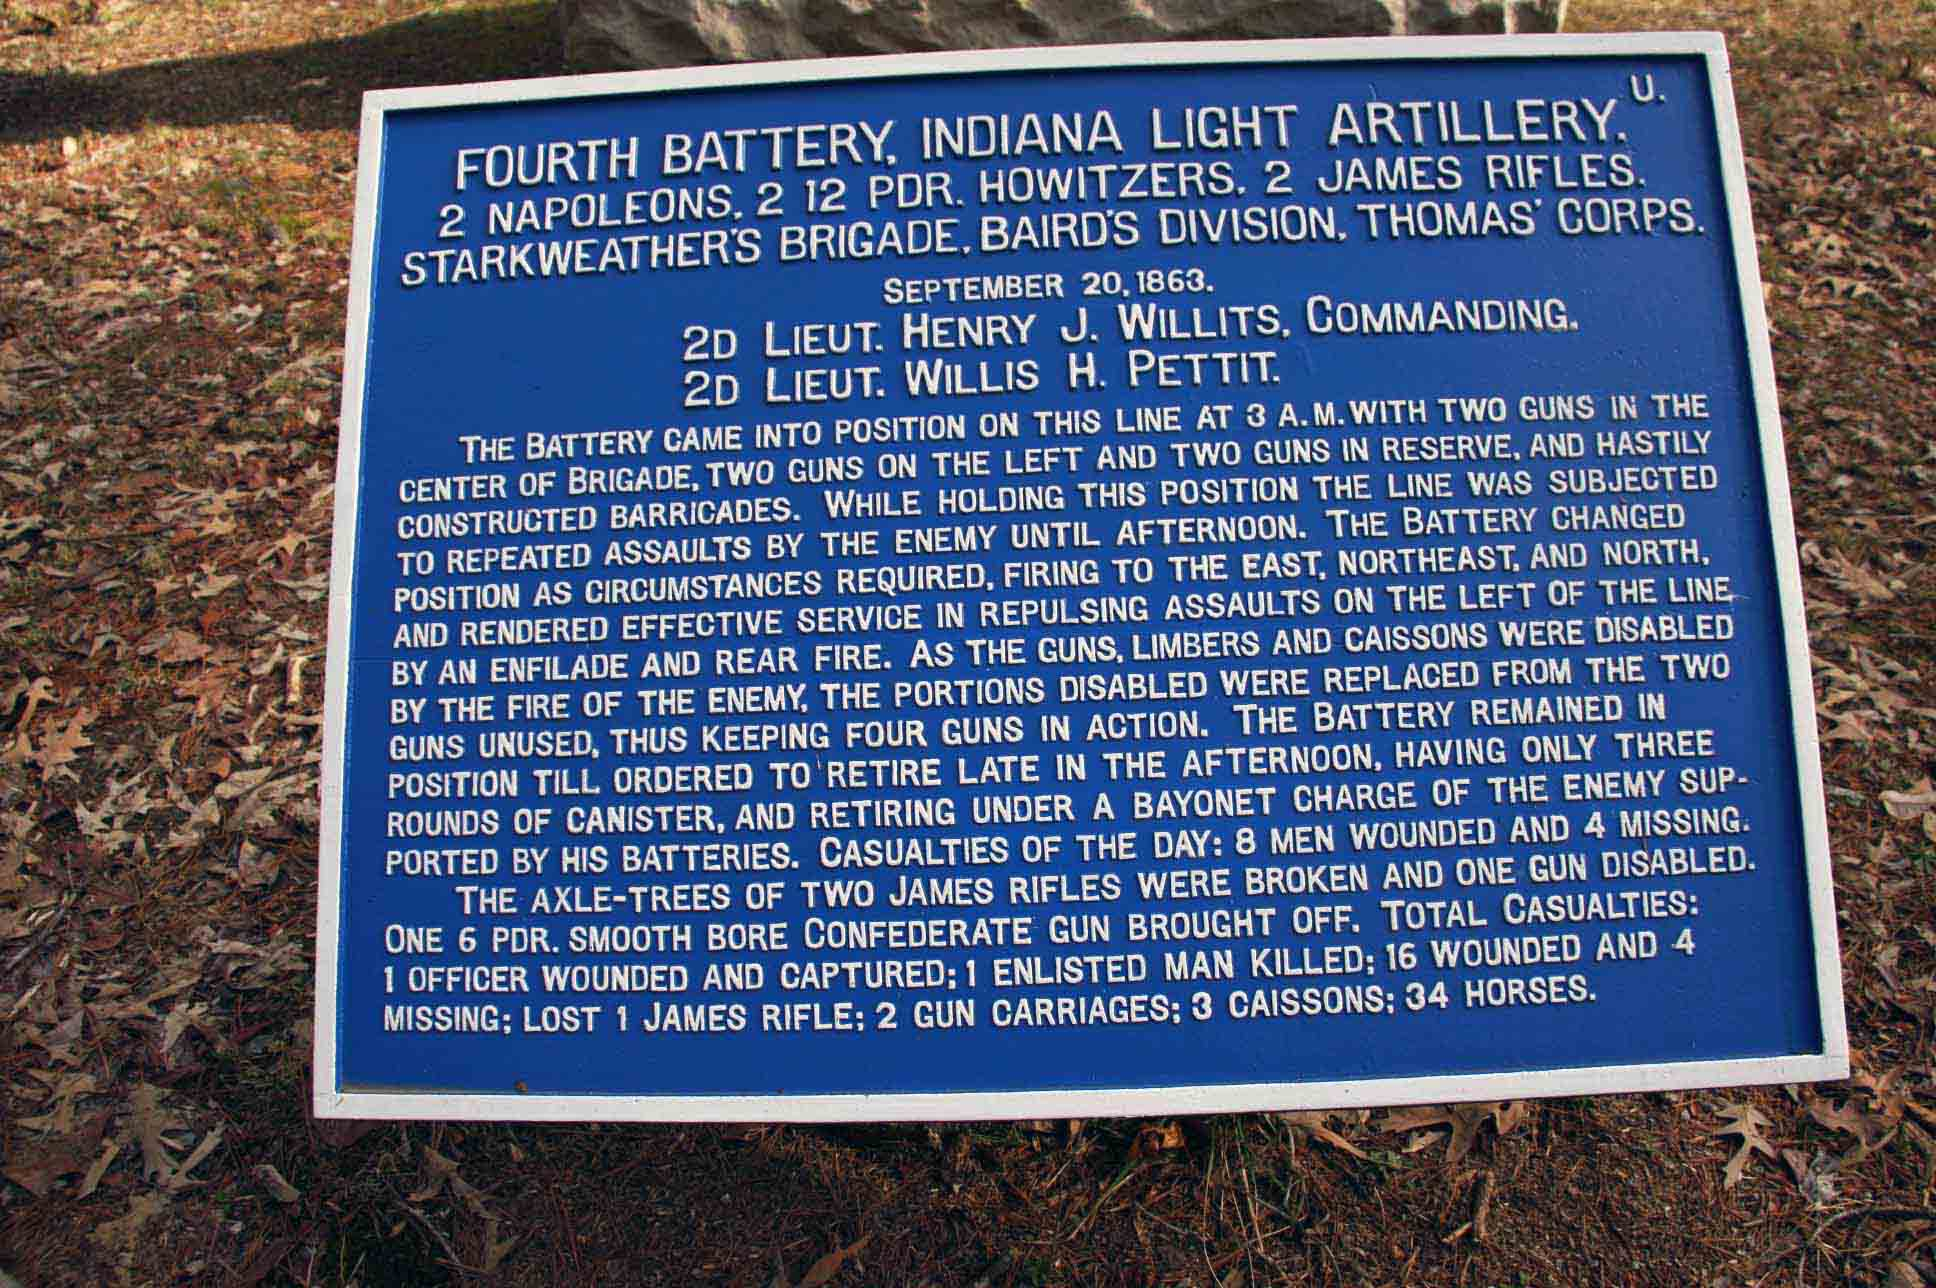 Fourth Battery, Indiana Light Artillery Tablet, click photo to enlarge.